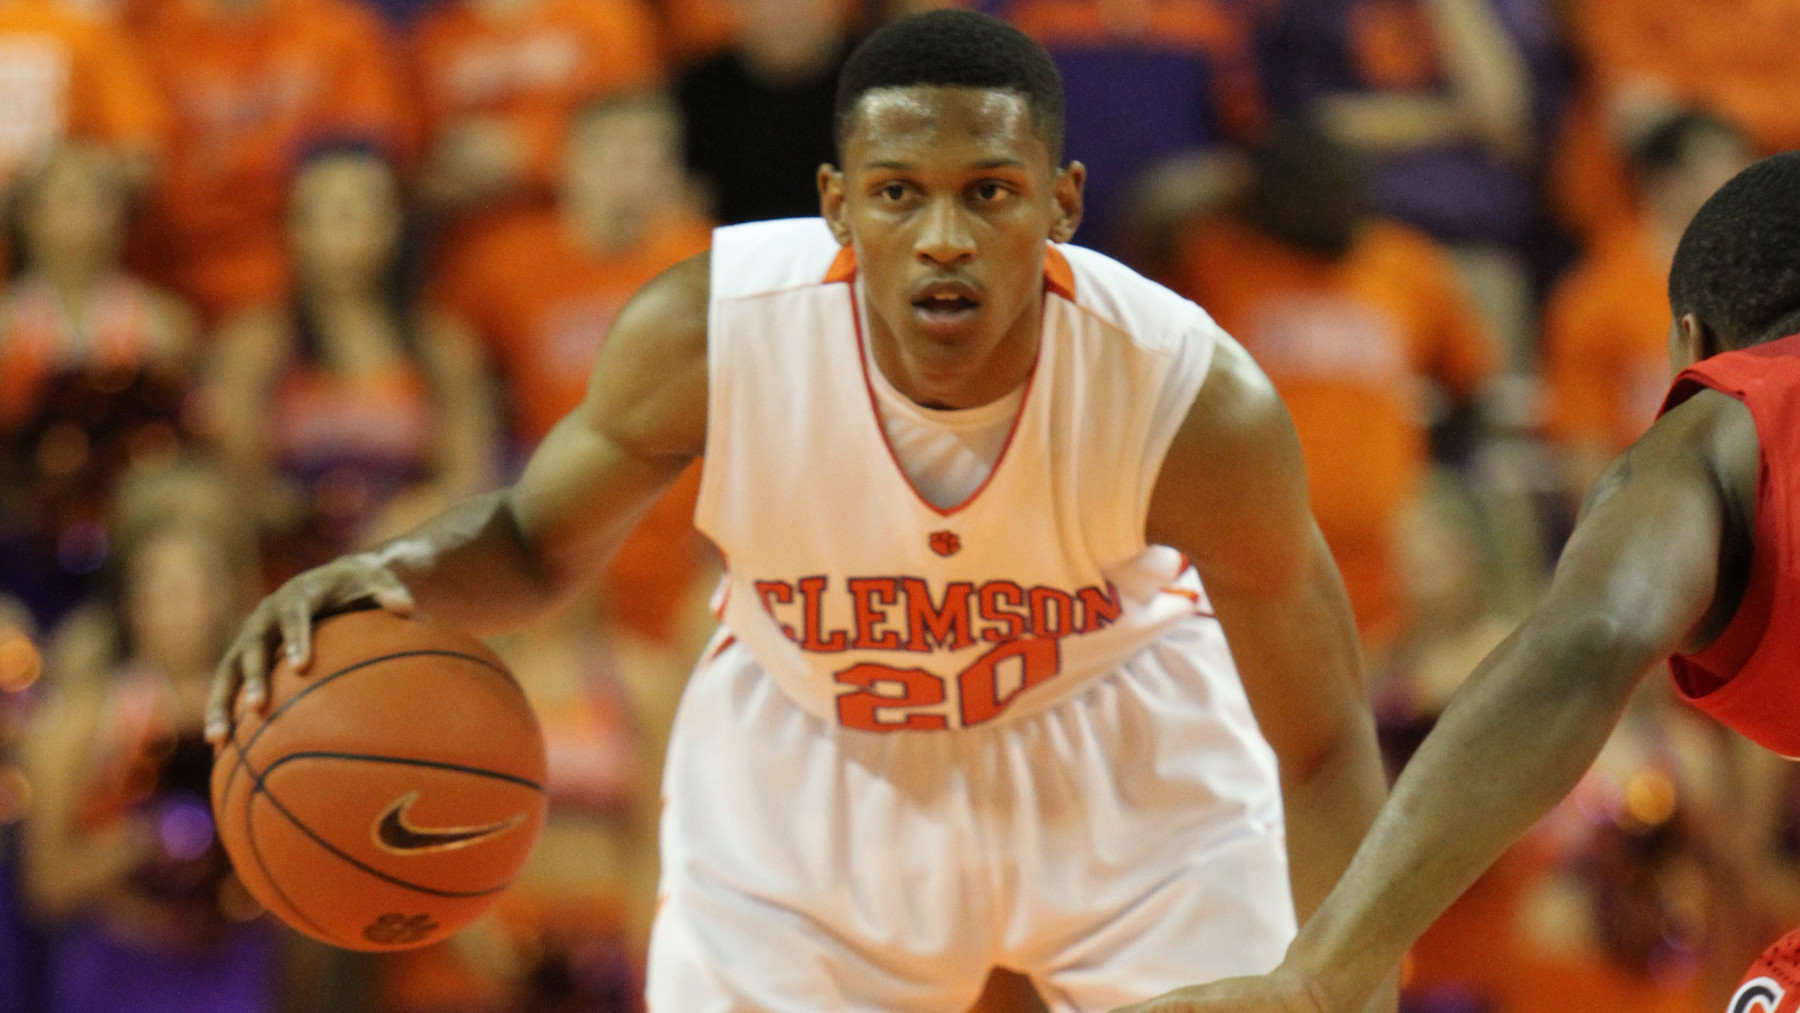 Clemson Falls Victim to Last-Second Three, Loses 58-57 to NC State